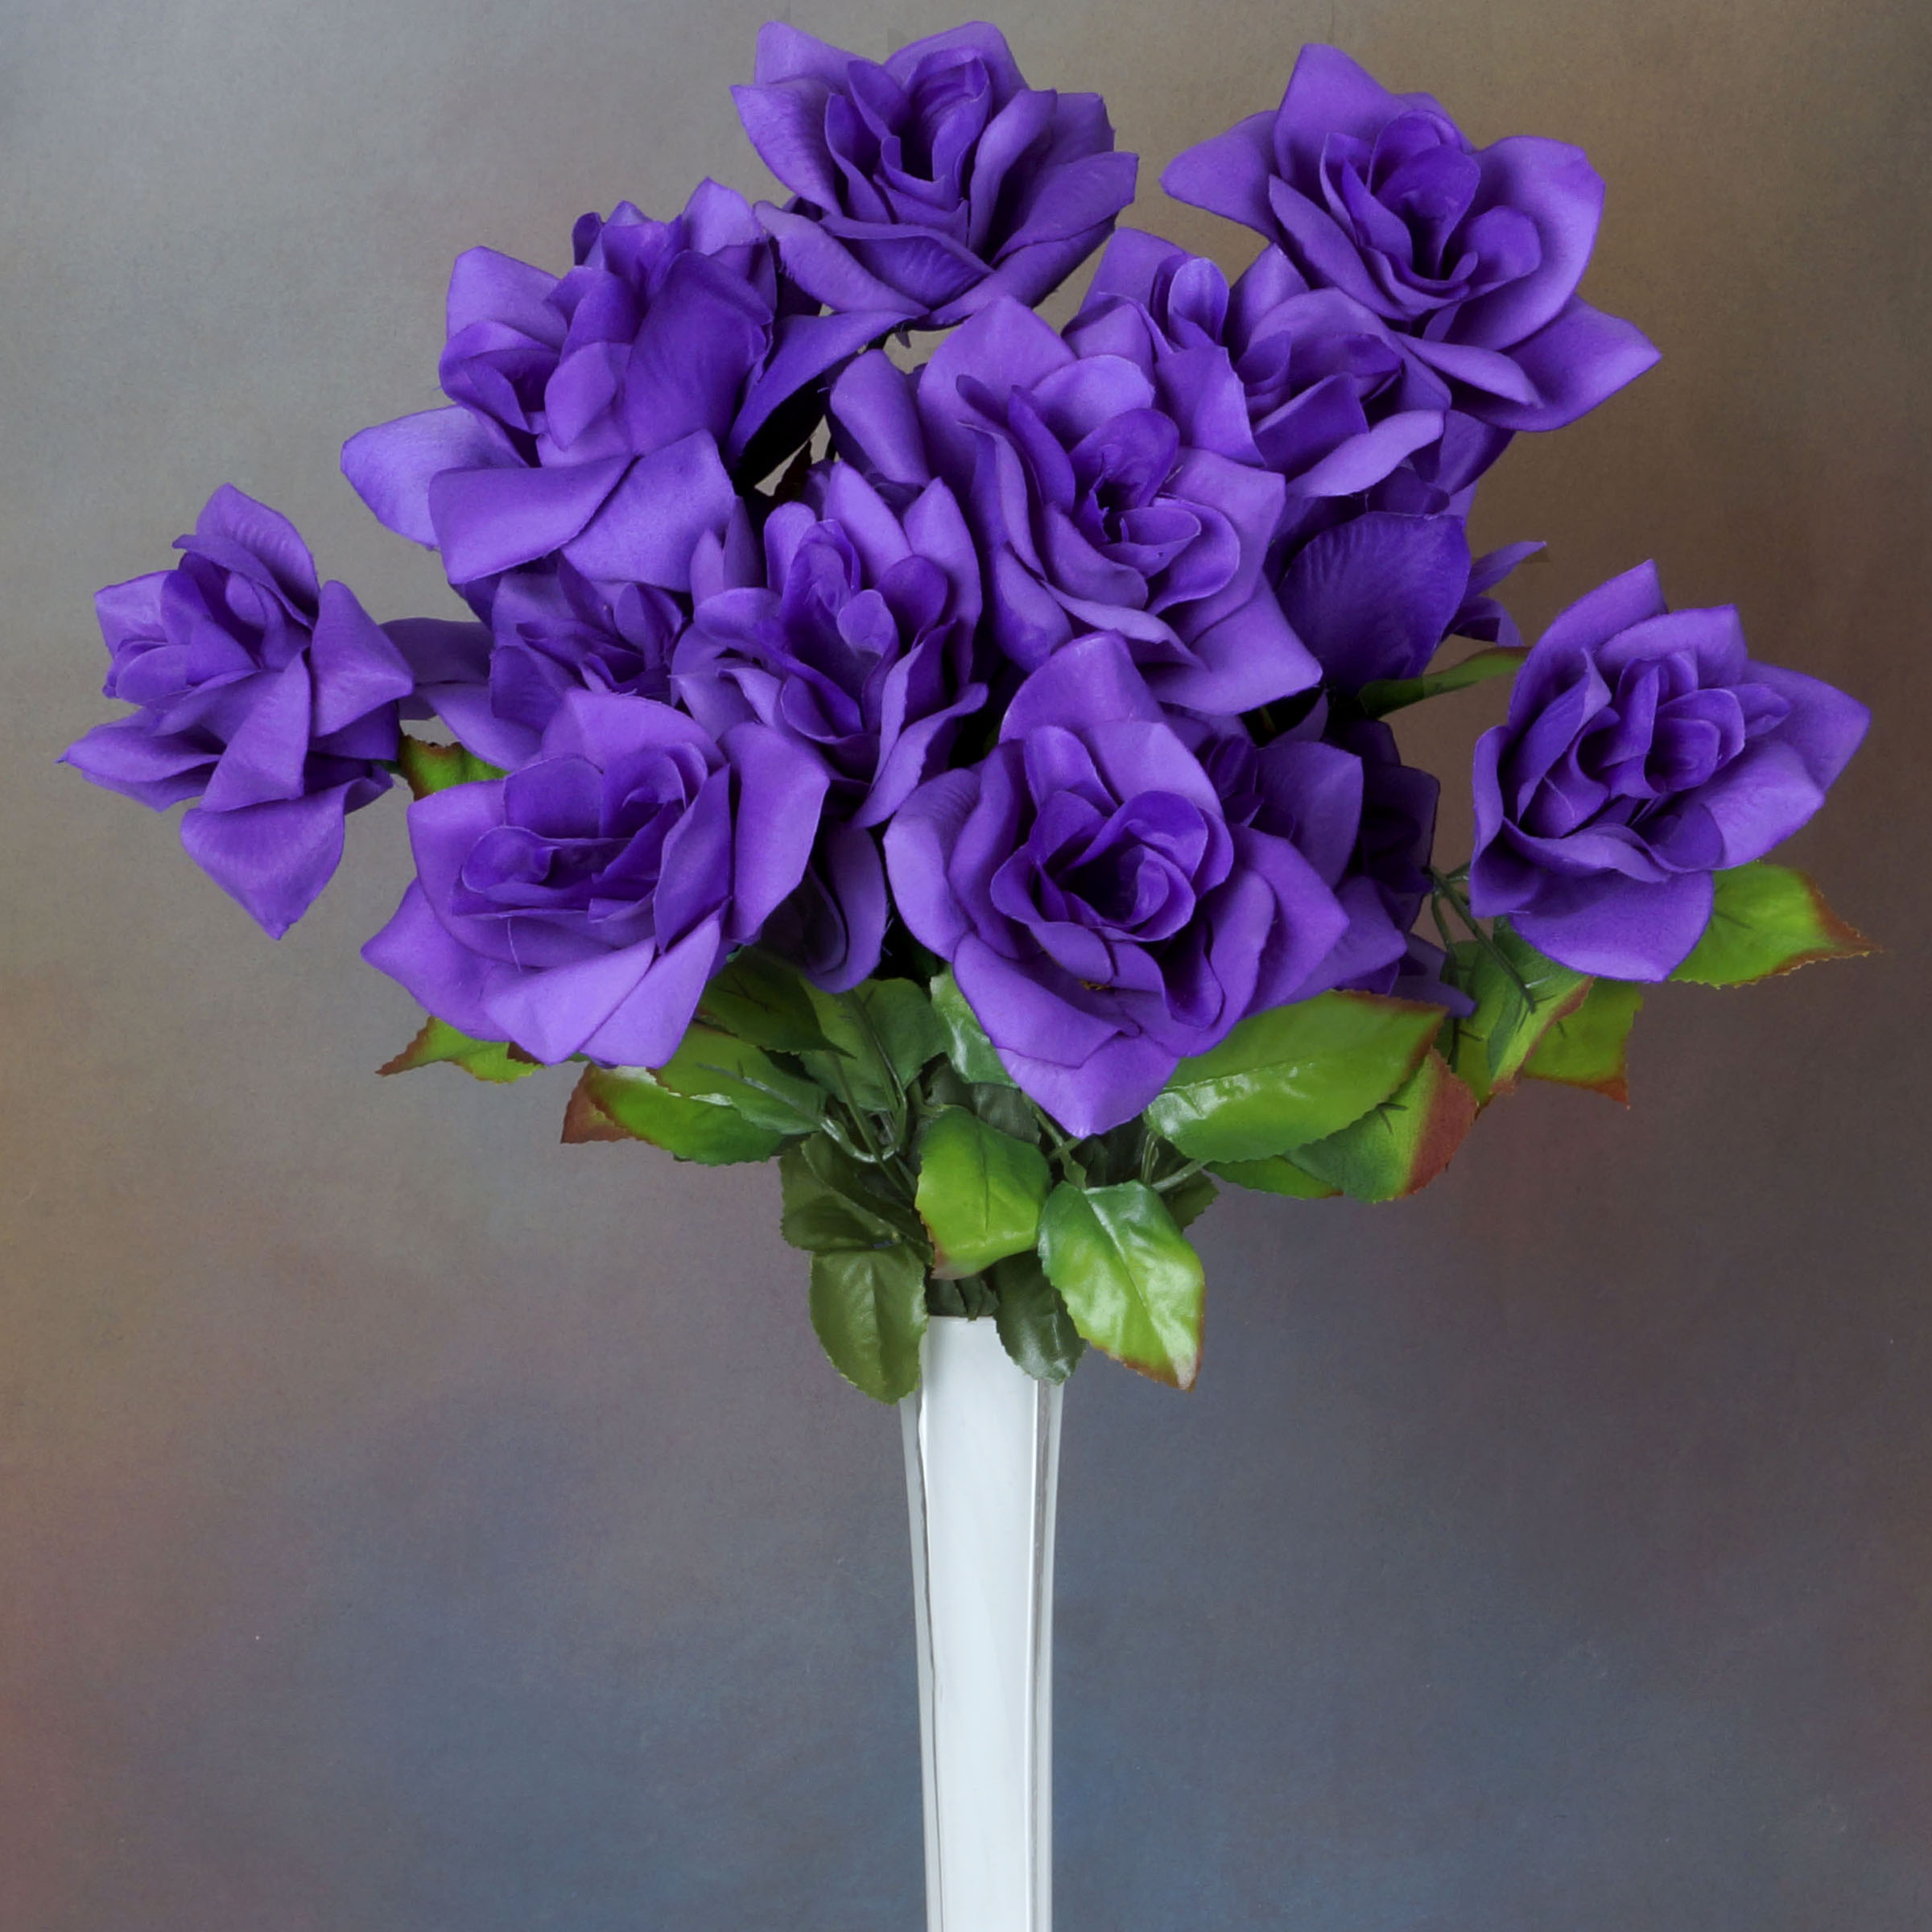 Wedding Flowers Cheap Online: 336 VELVET BLOOM OPEN ROSES Wholesale Wedding Flowers